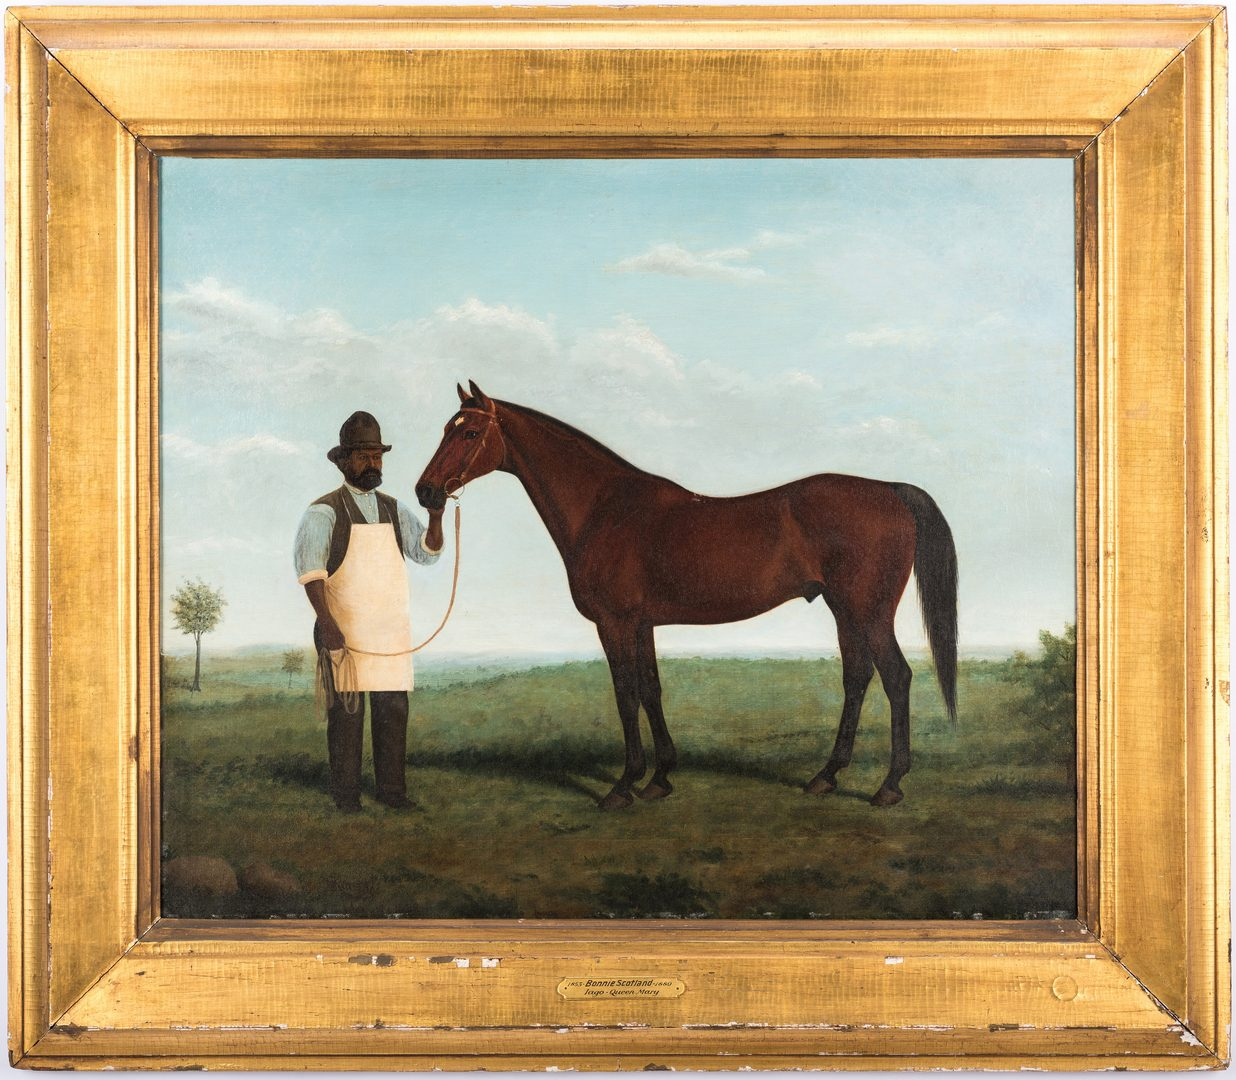 Lot 109: H. Kittredge, Portrait of Bonnie Scotland & Robert Green, Belle Meade